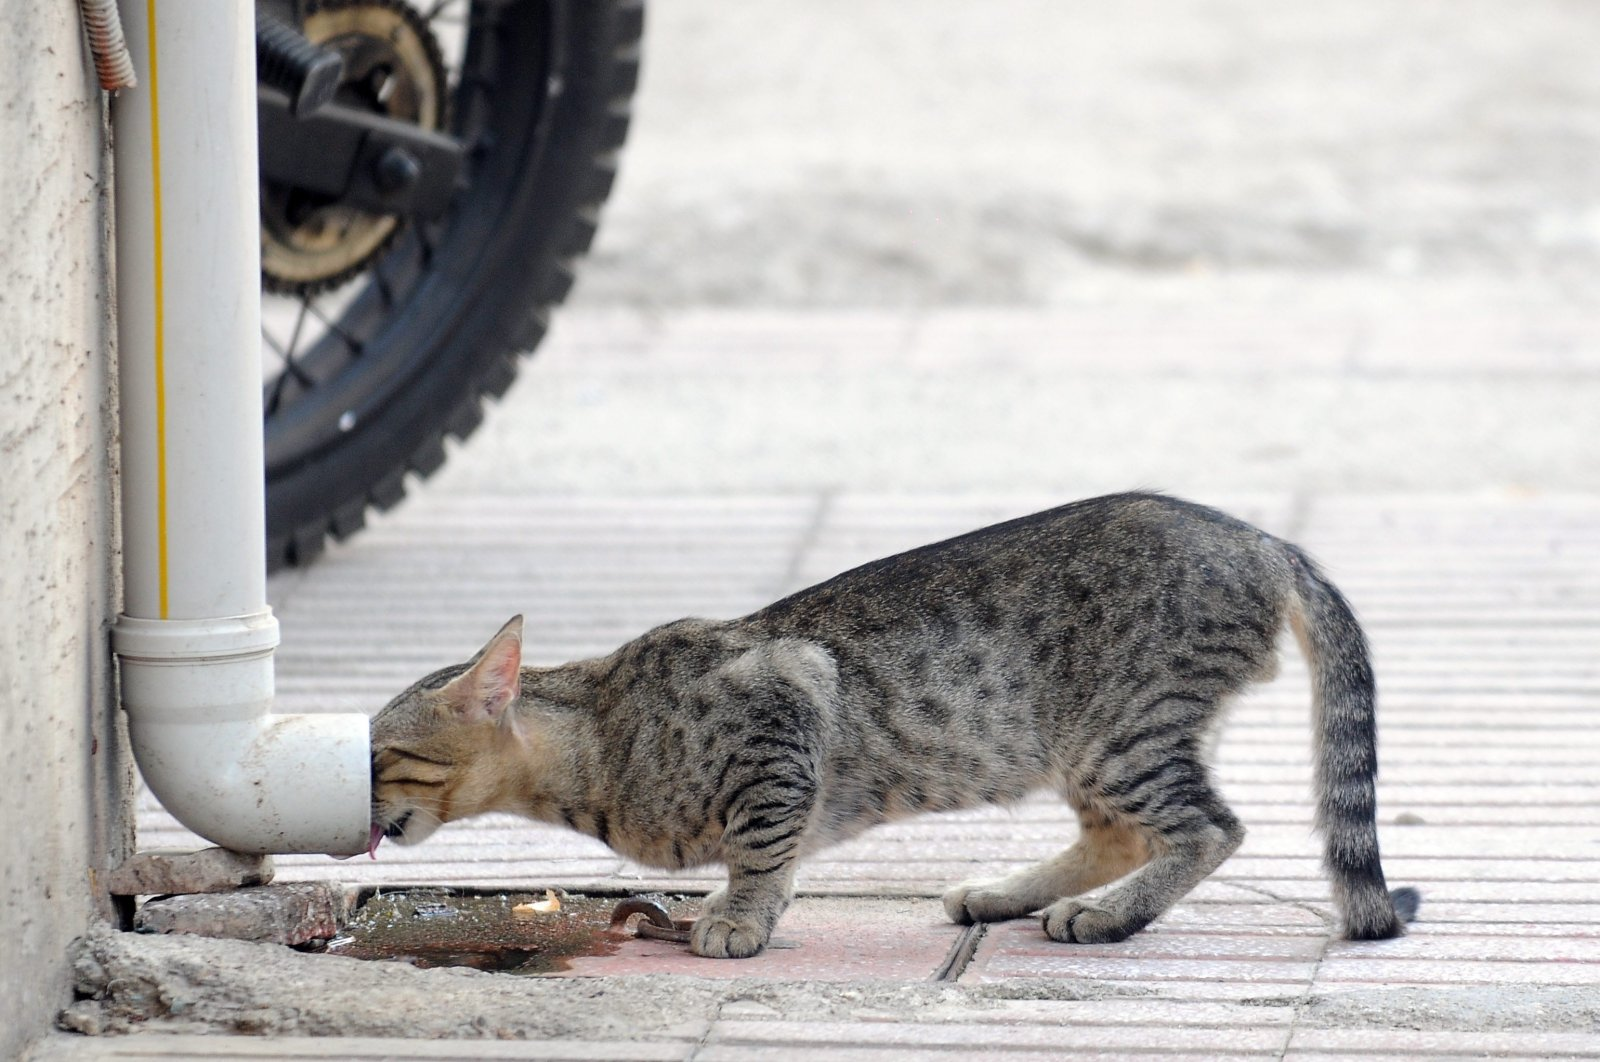 A stray cat tries to drink water from a drain pipe during a heatwave in Antalya, Turkey, Aug. 12, 2011. (Photo by Göksel Yapar)